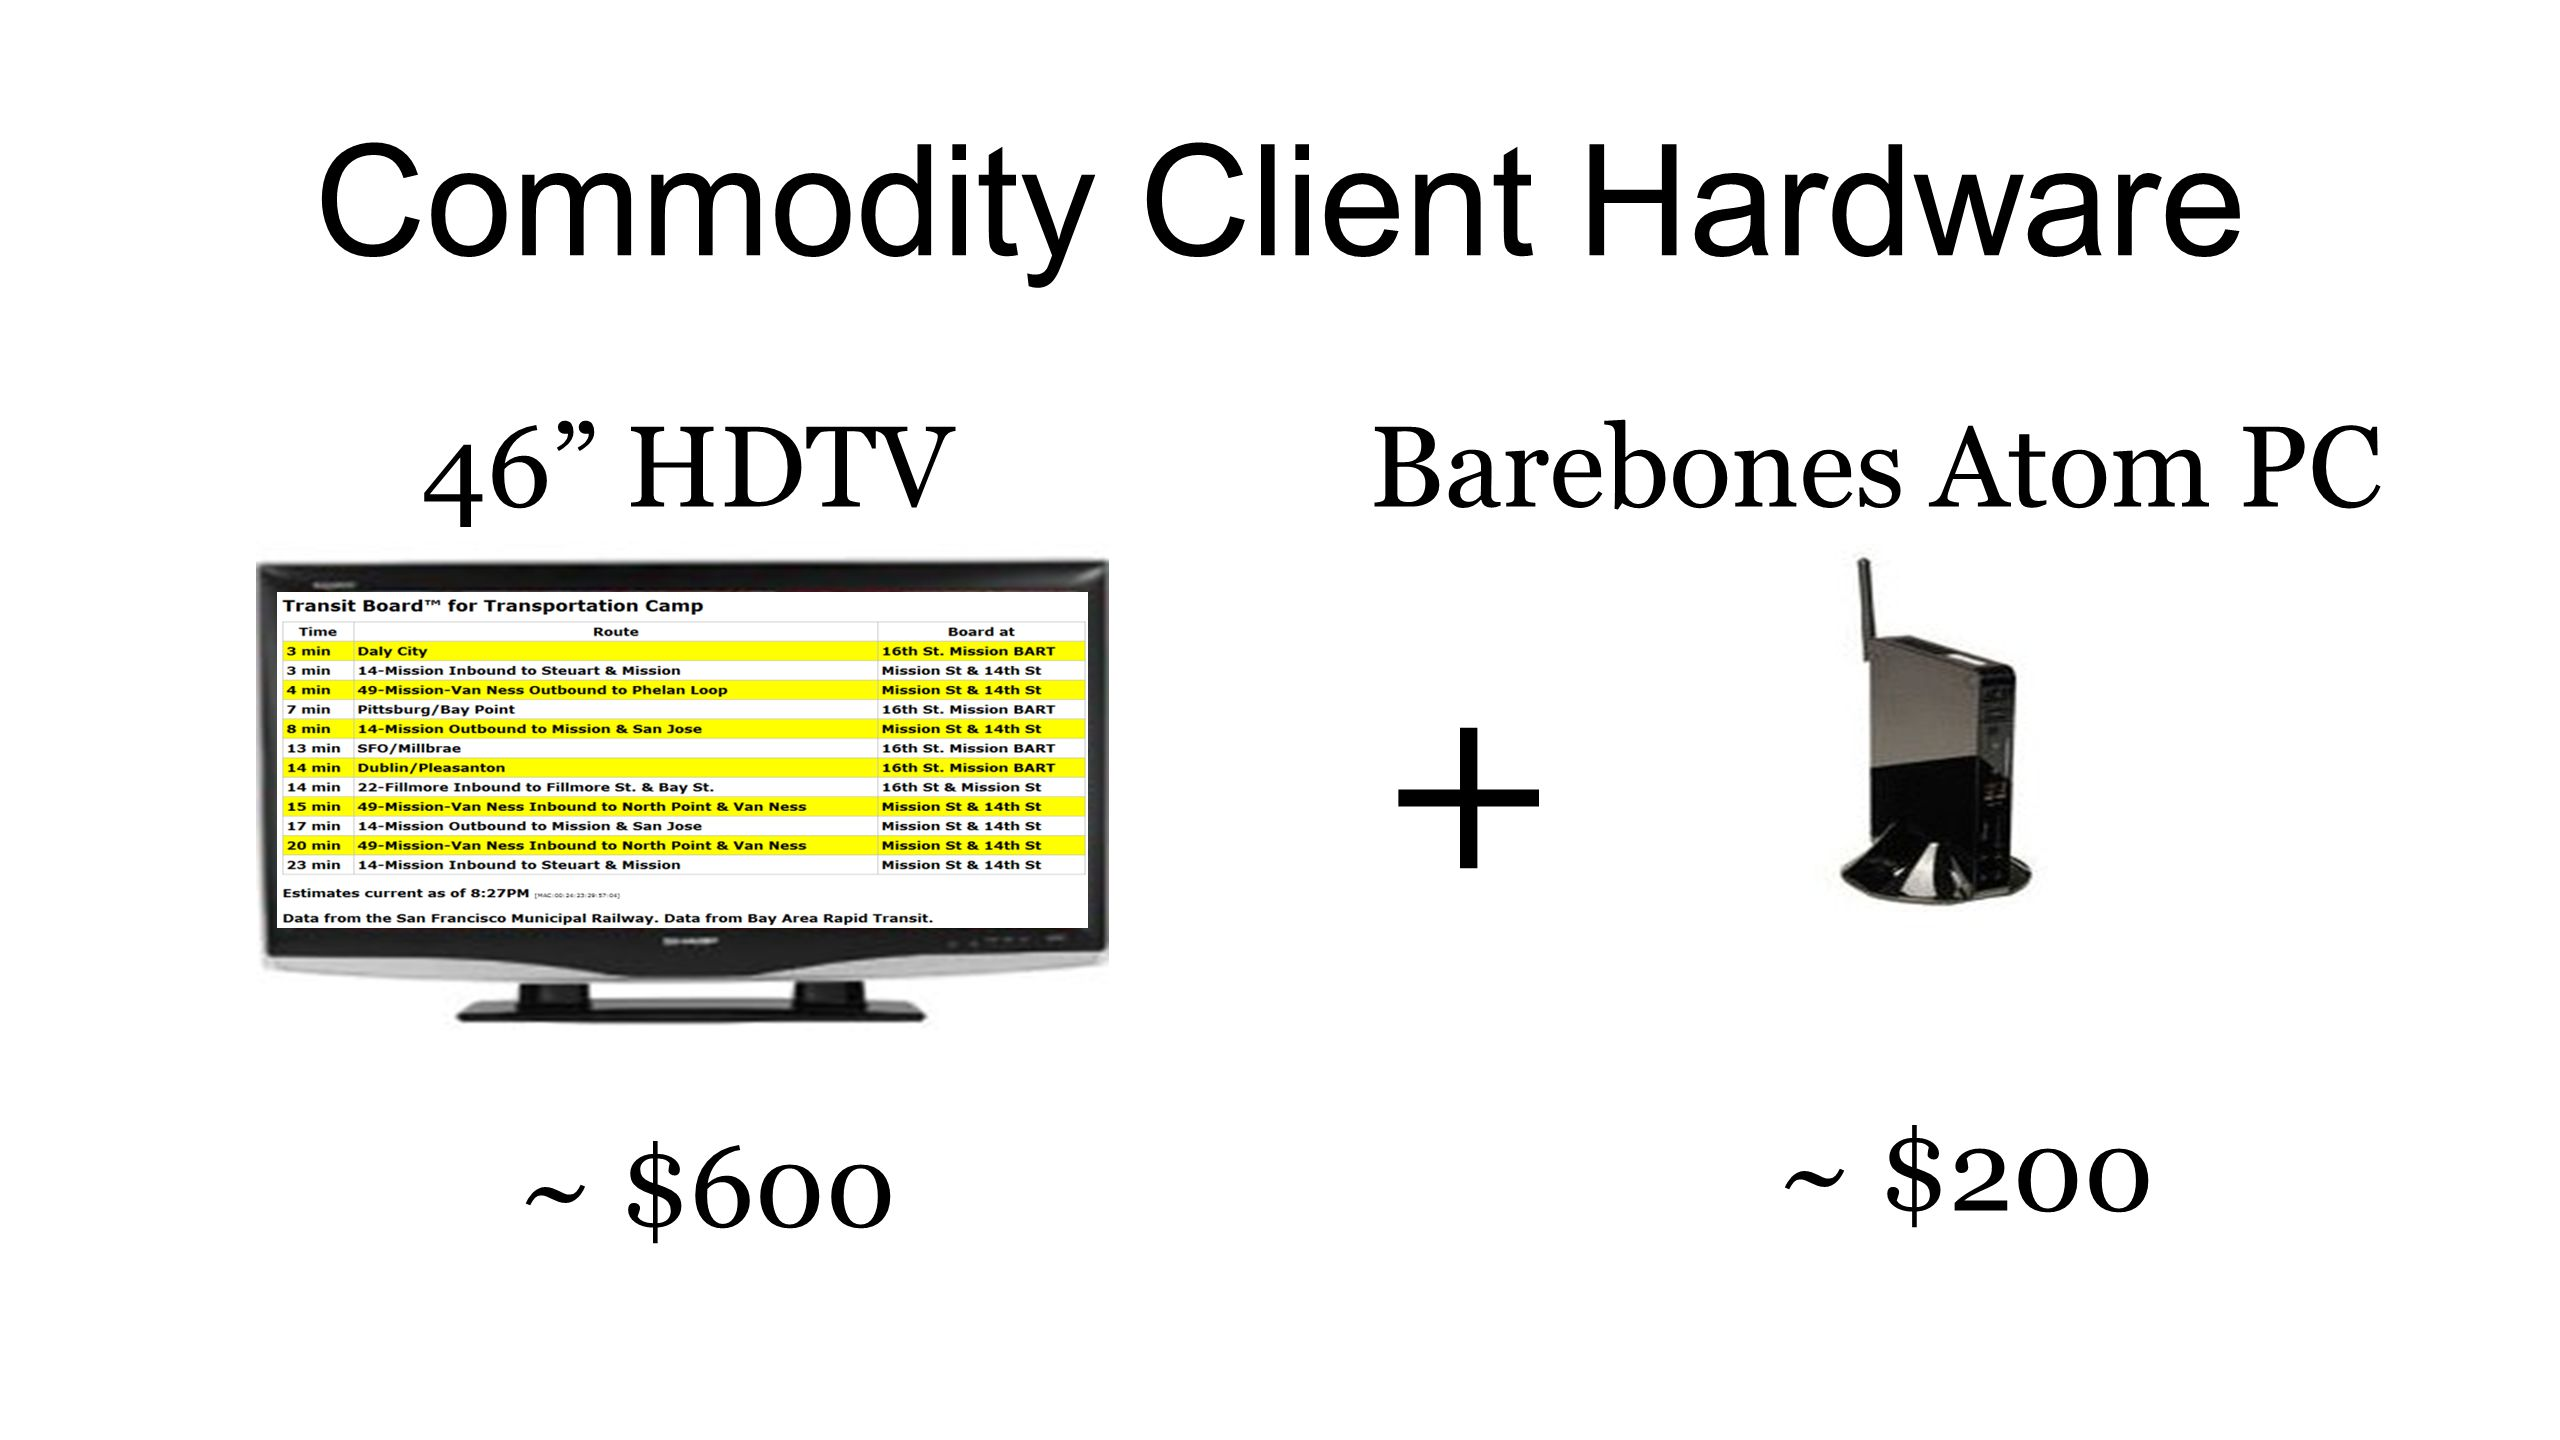 Commodity Client Hardware ~ $600 + ~ $200 46 HDTVBarebones Atom PC